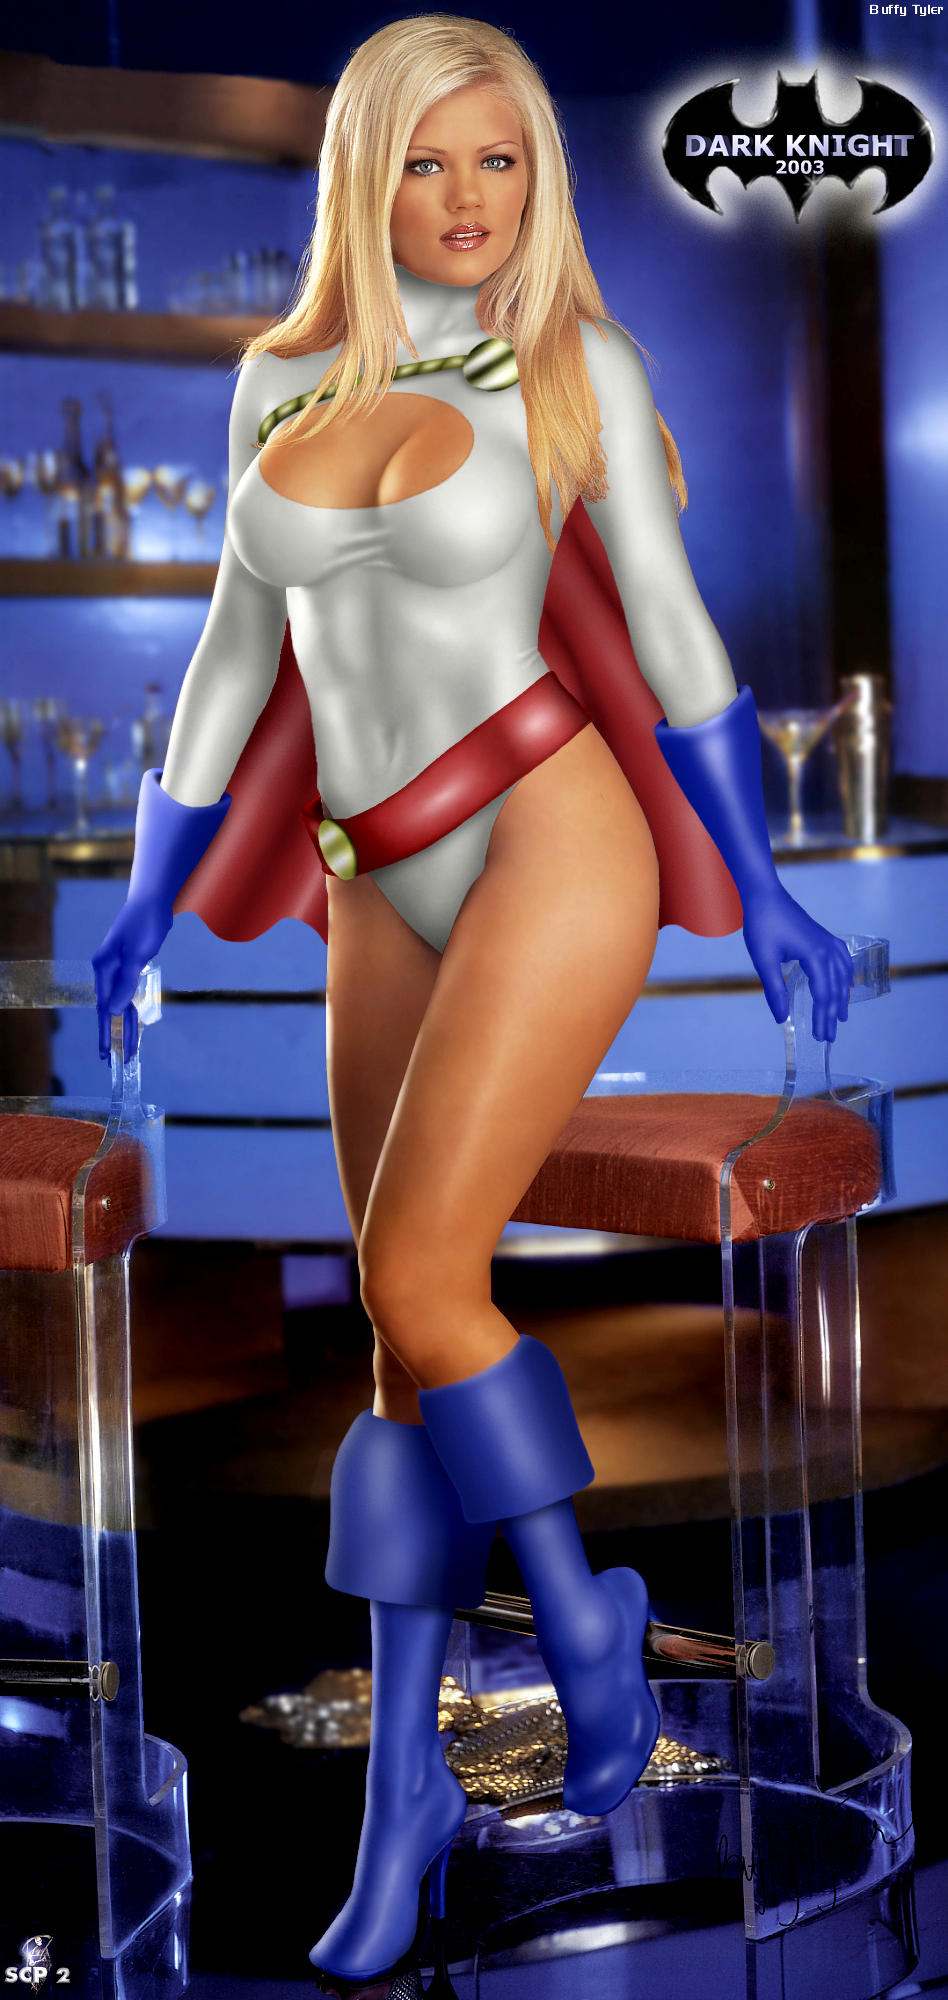 Powergirl by Dark Knight